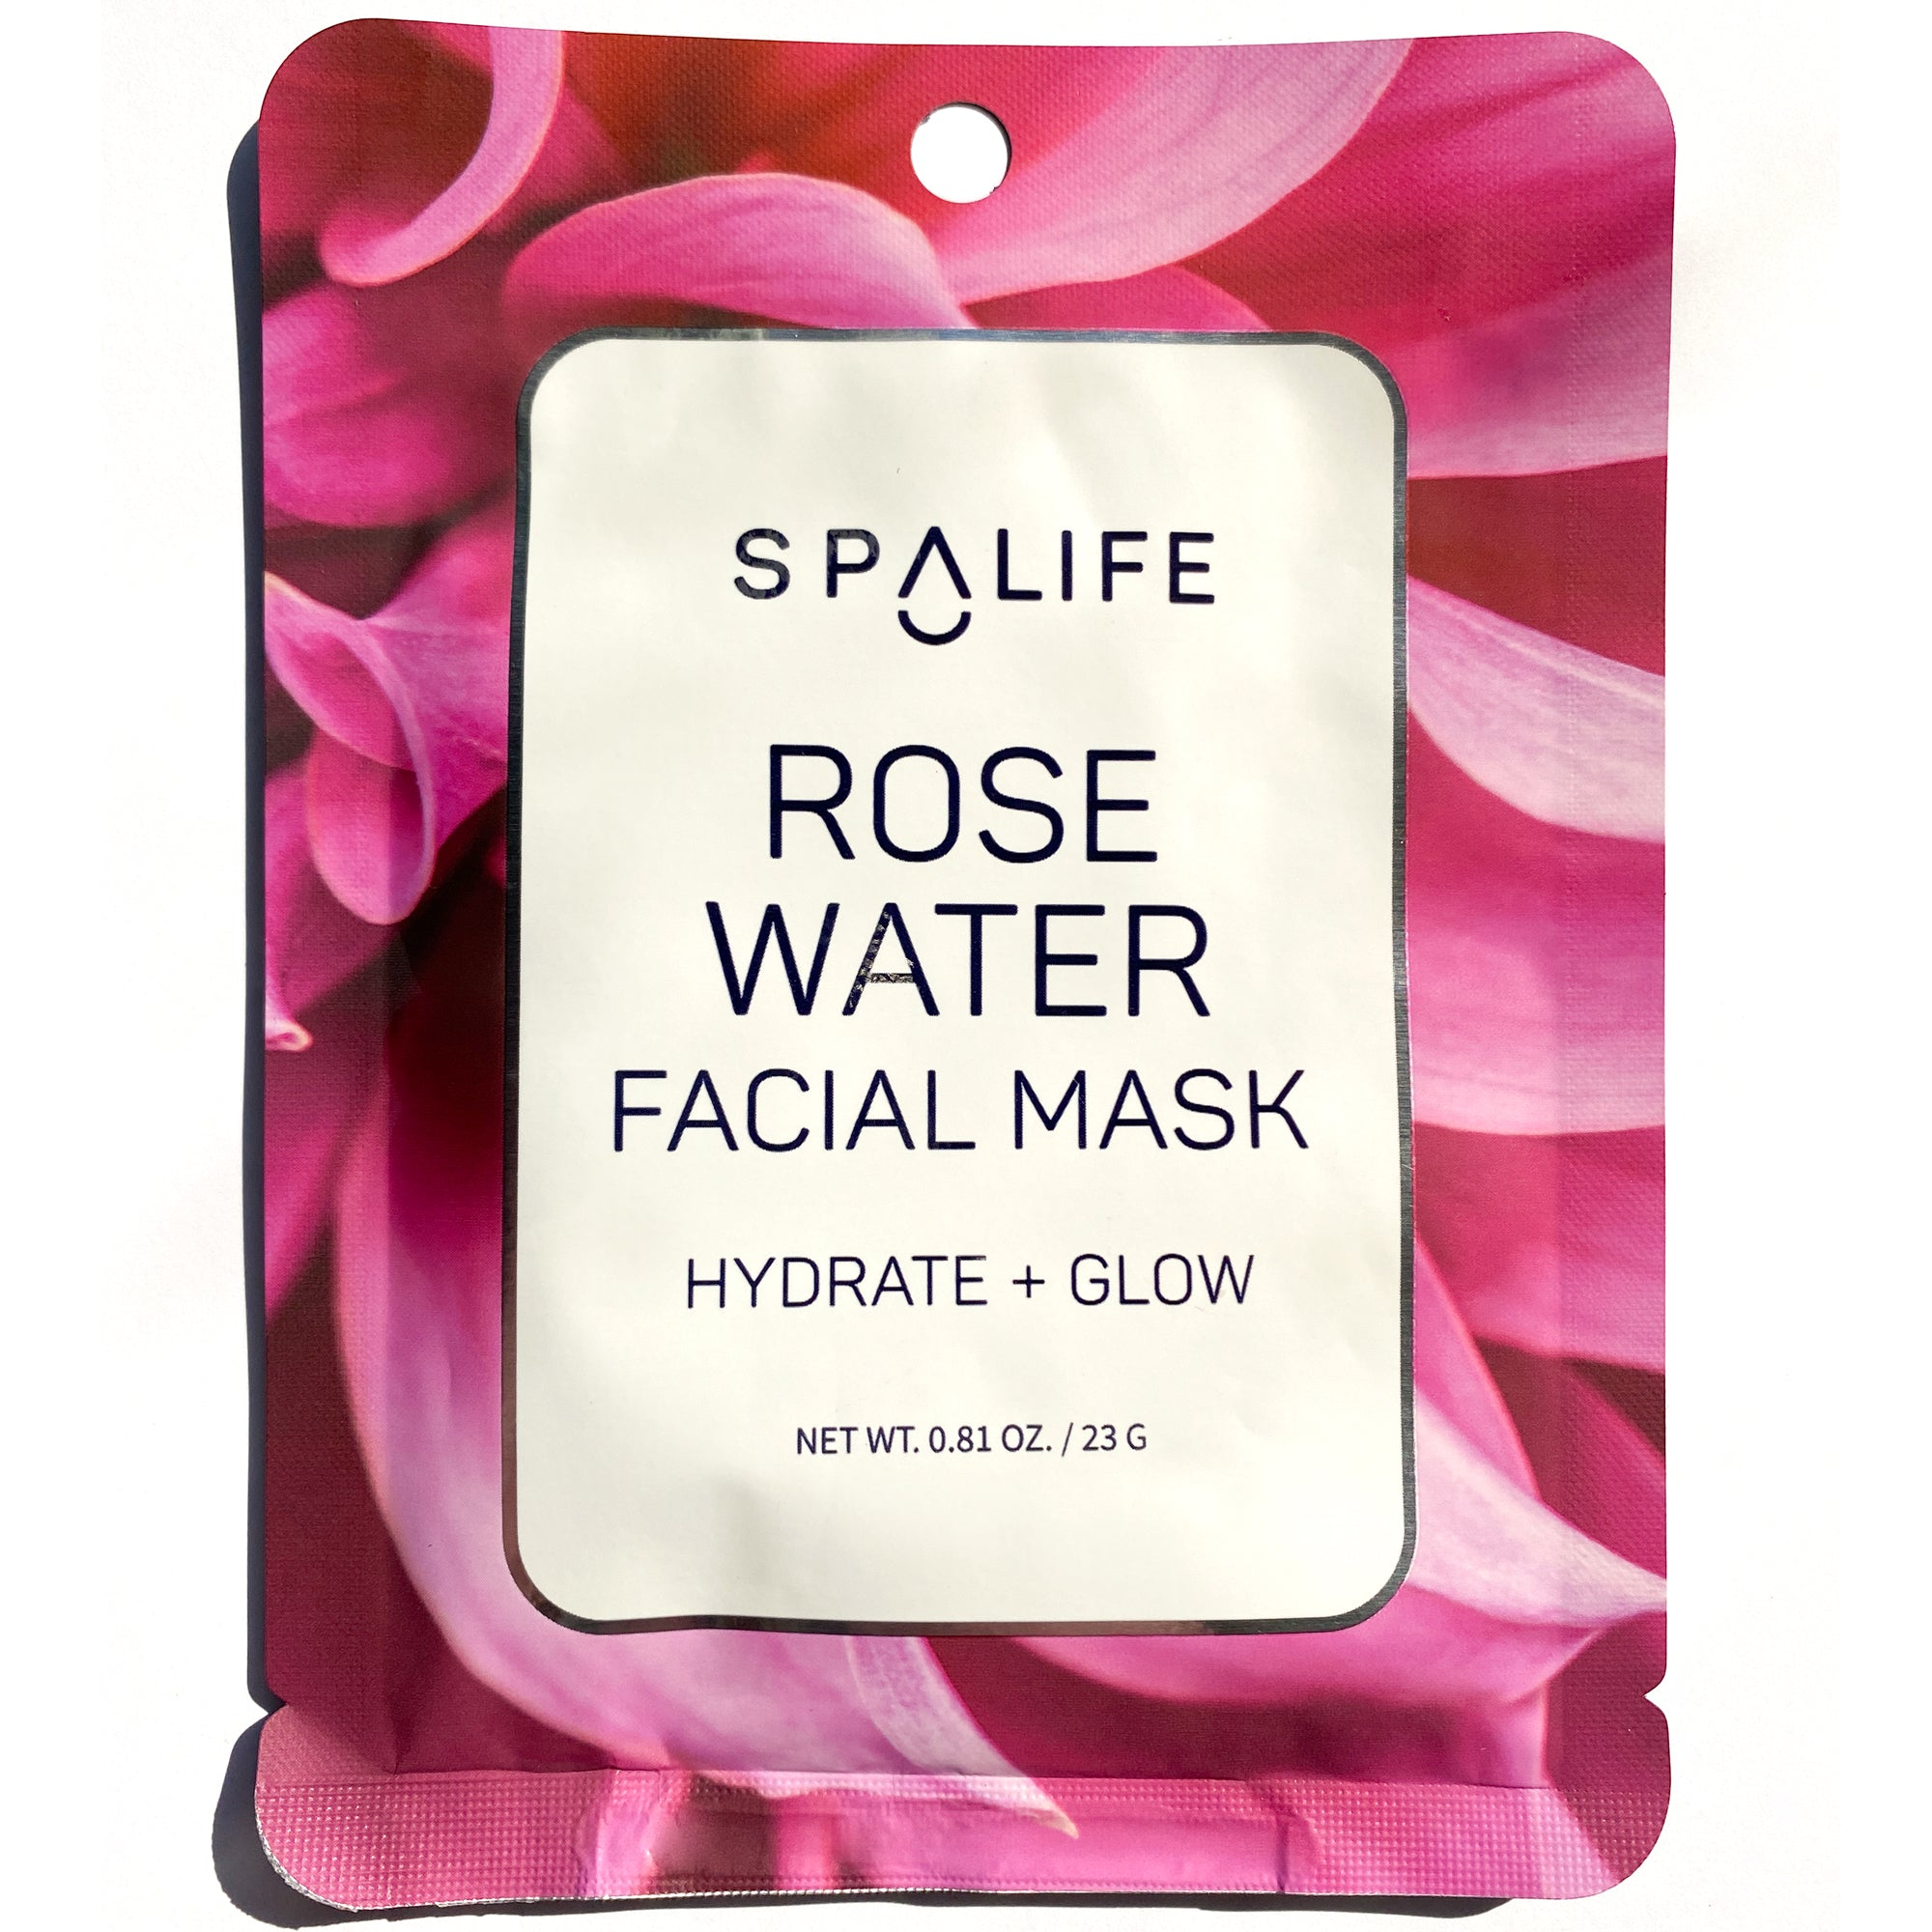 Rose Water Facial Mask - Hydrate & Glow